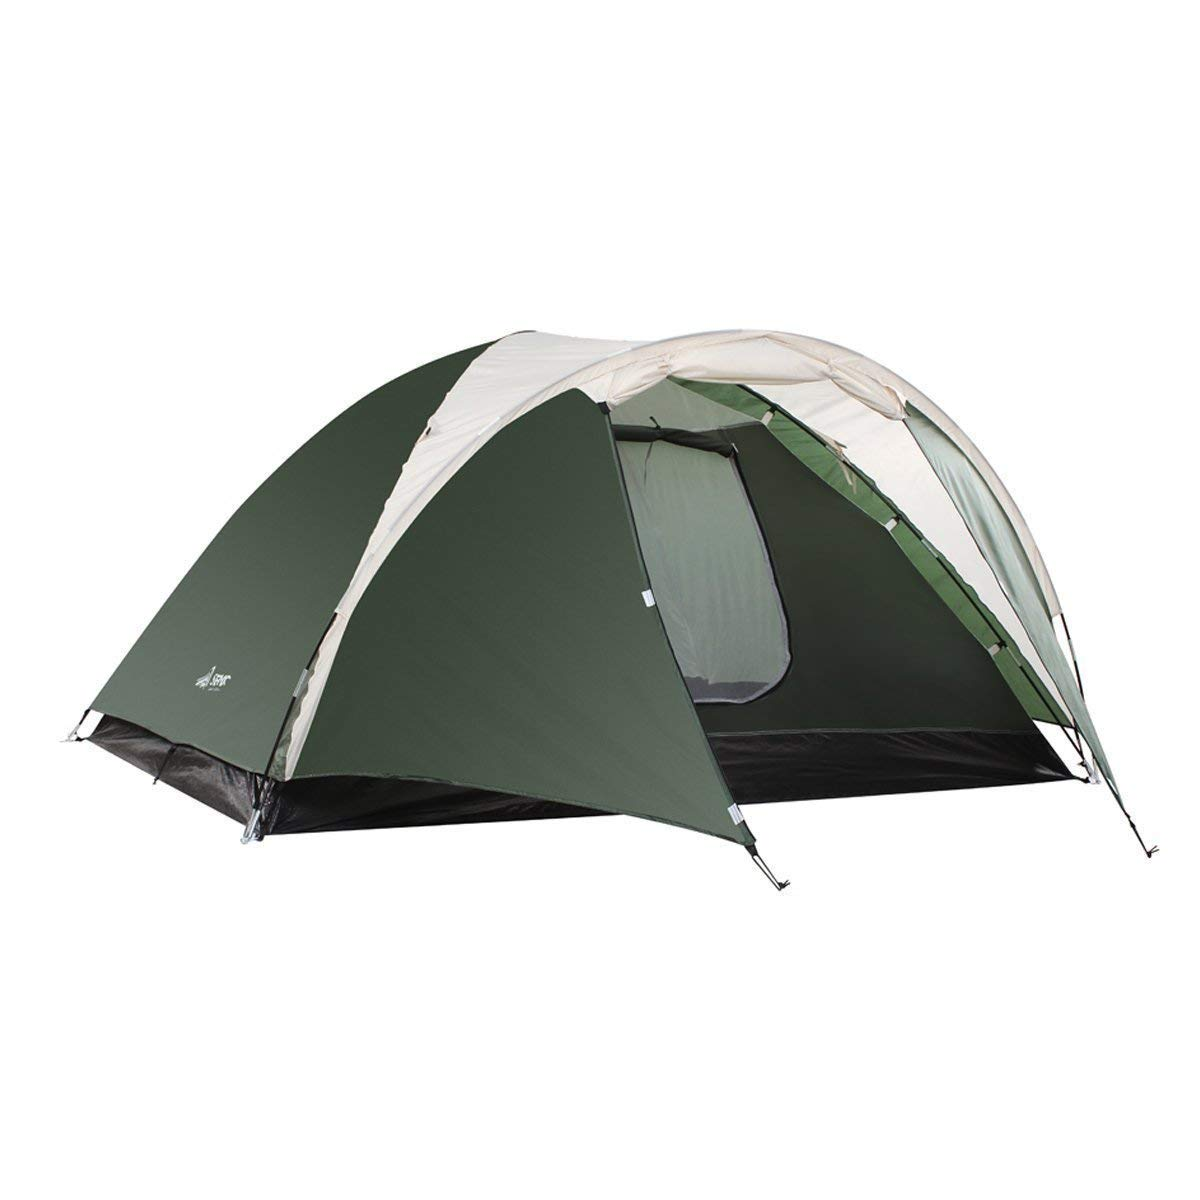 SEMOO Camping Tent - 3 to 4 Persons, Best cheap tent